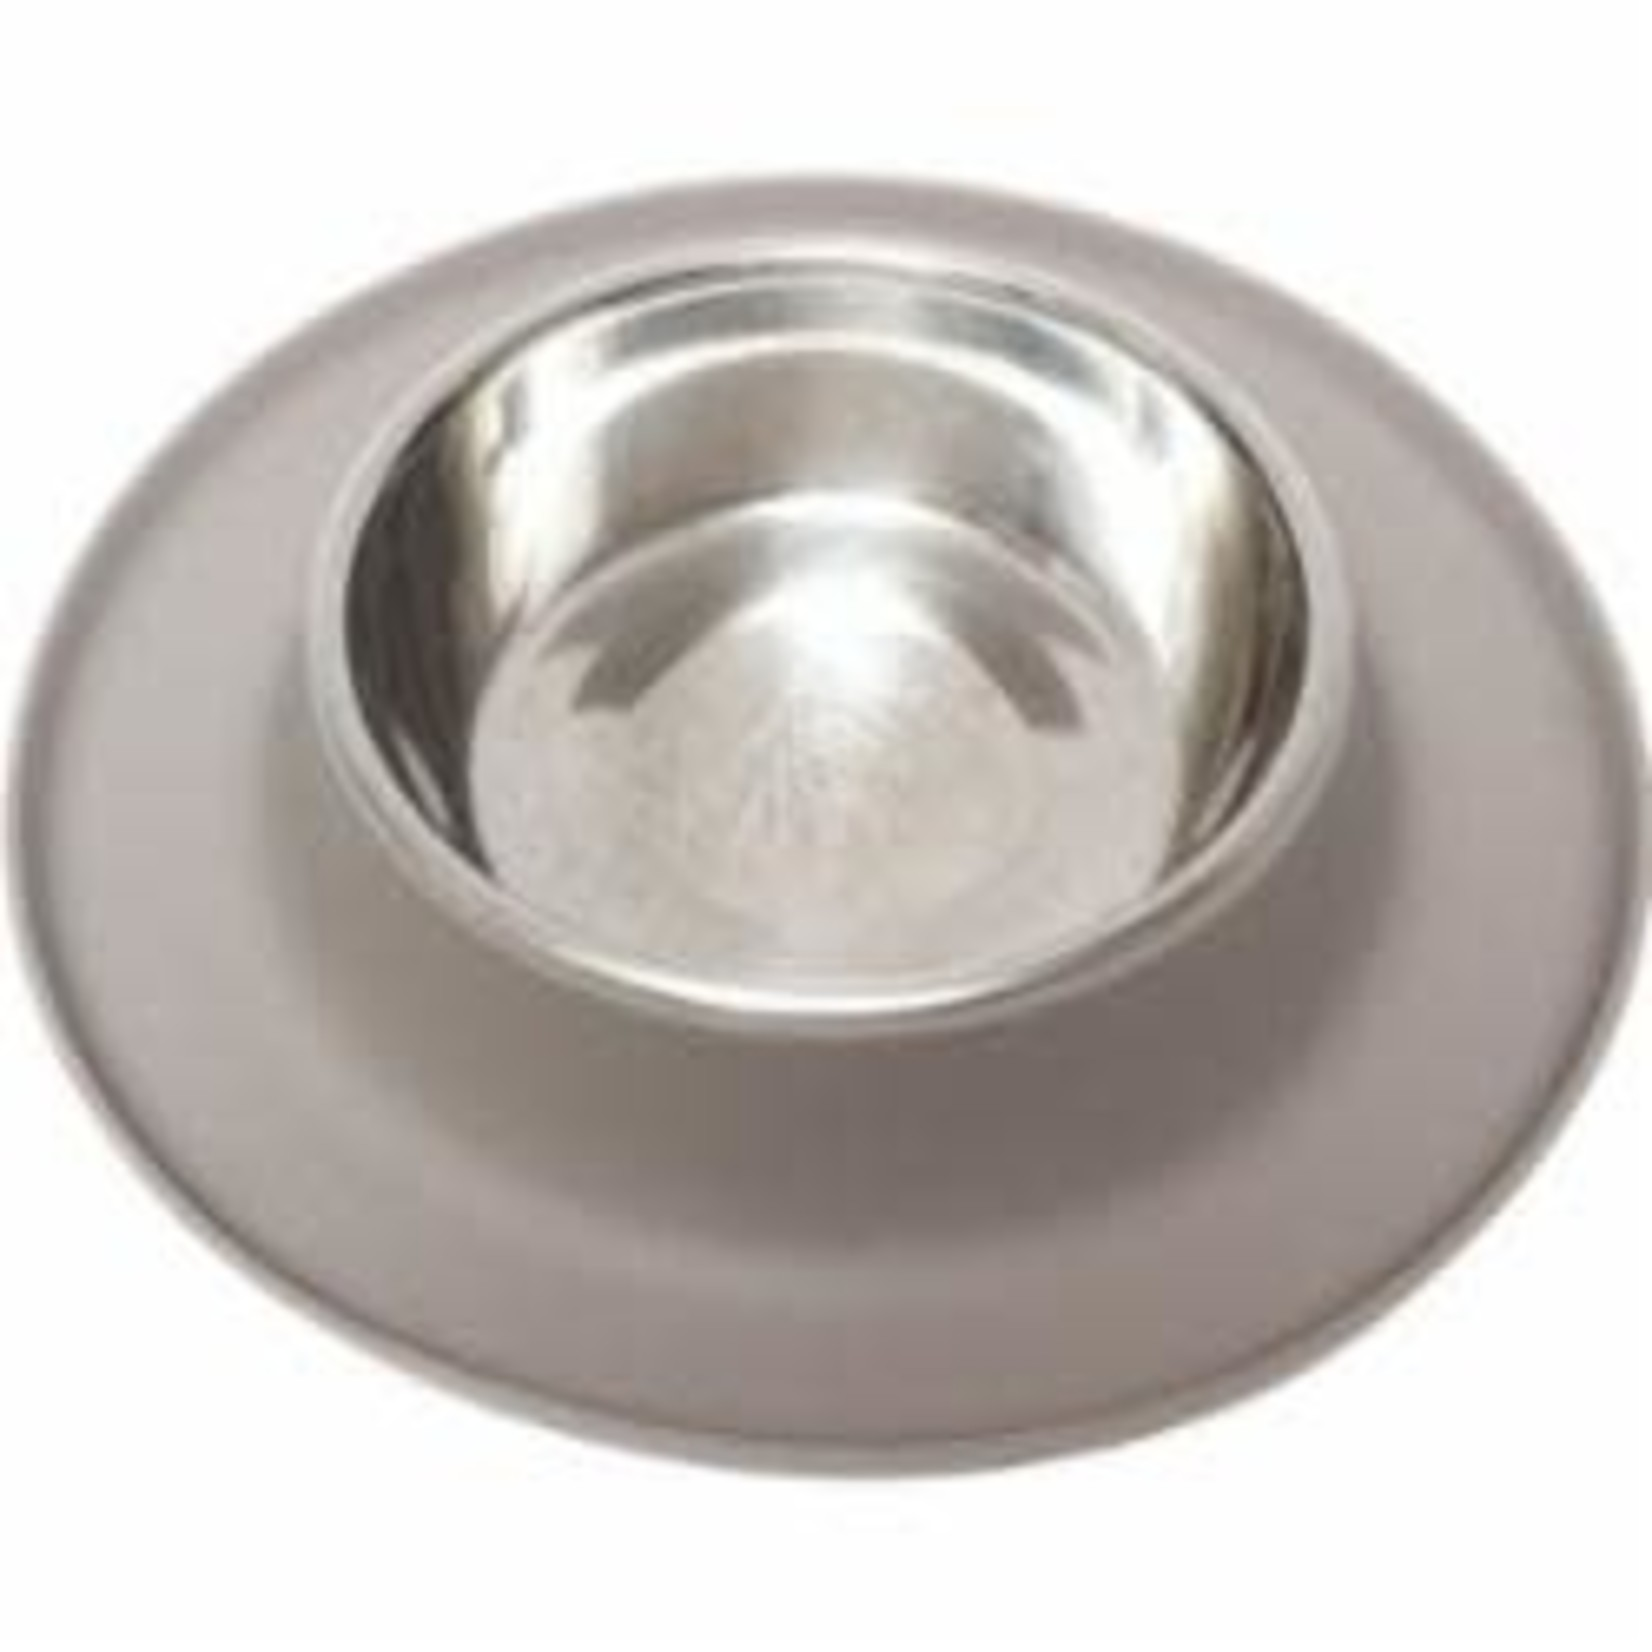 Messy Mutts Messy Mutts Dog Silicone Feeder Grey 6 CUP